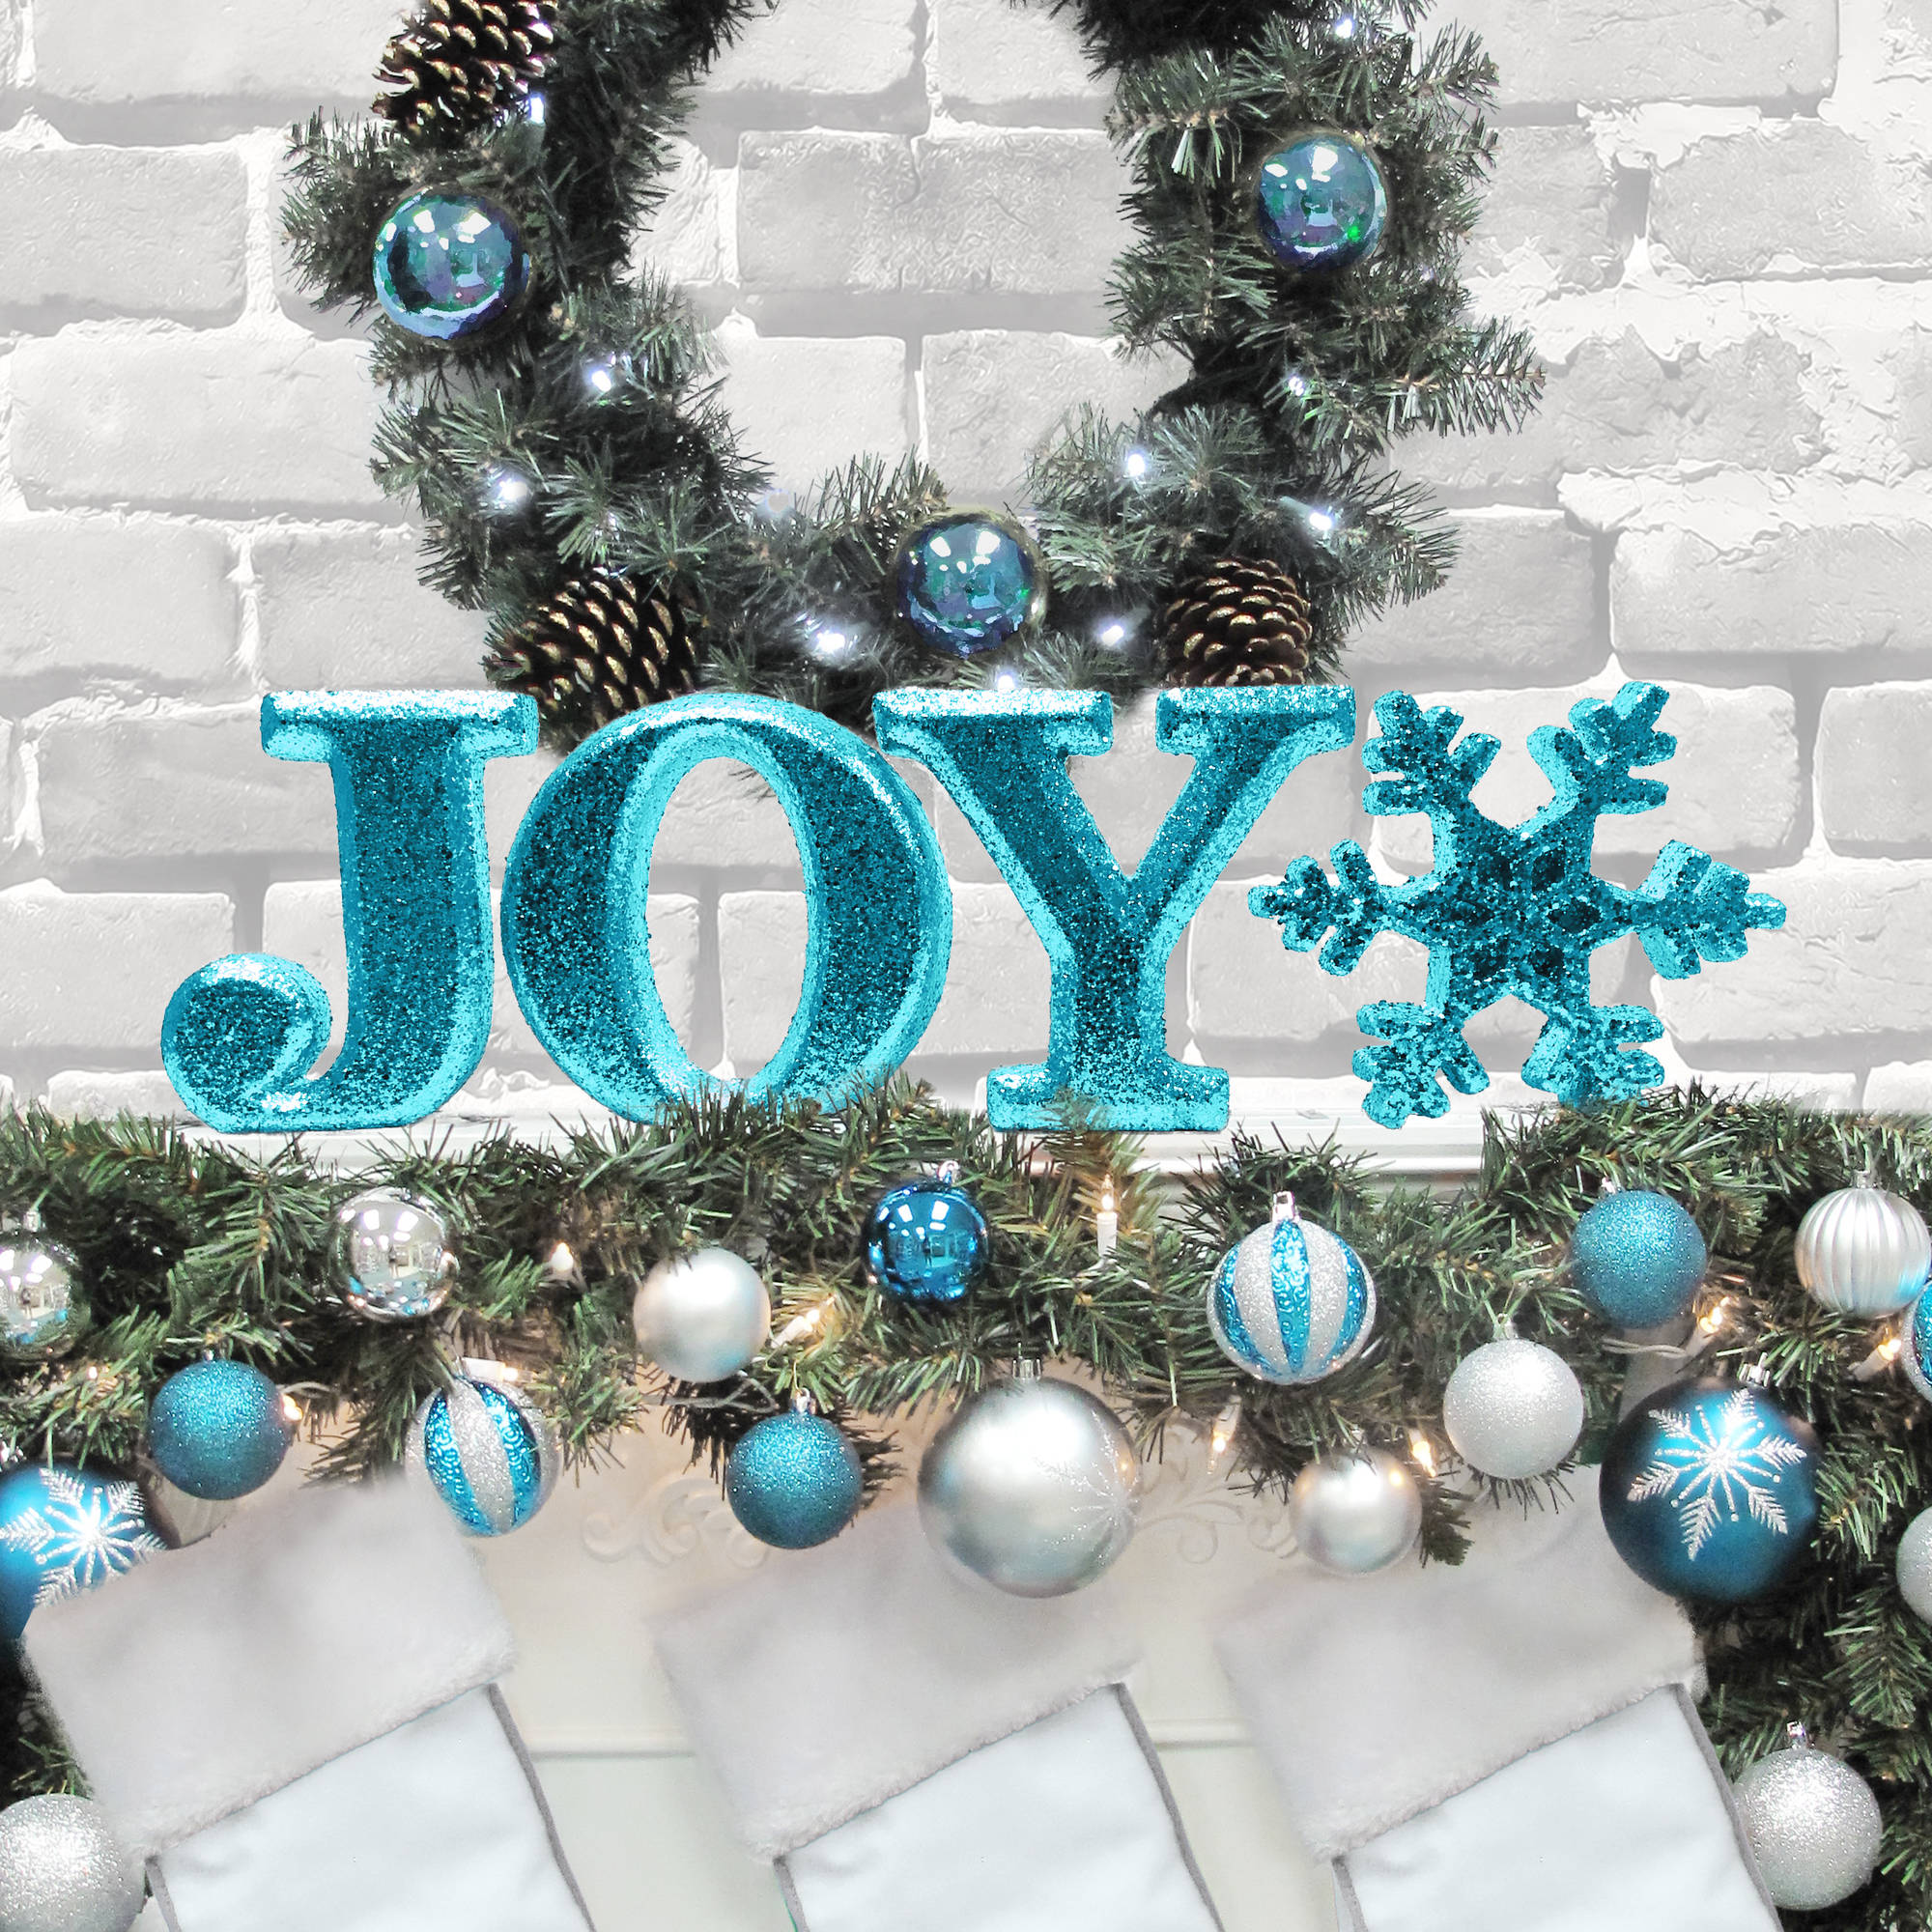 holiday time christmas decor 8 decorative joy letter set glitter teal walmartcom - Holiday Time Christmas Decorations